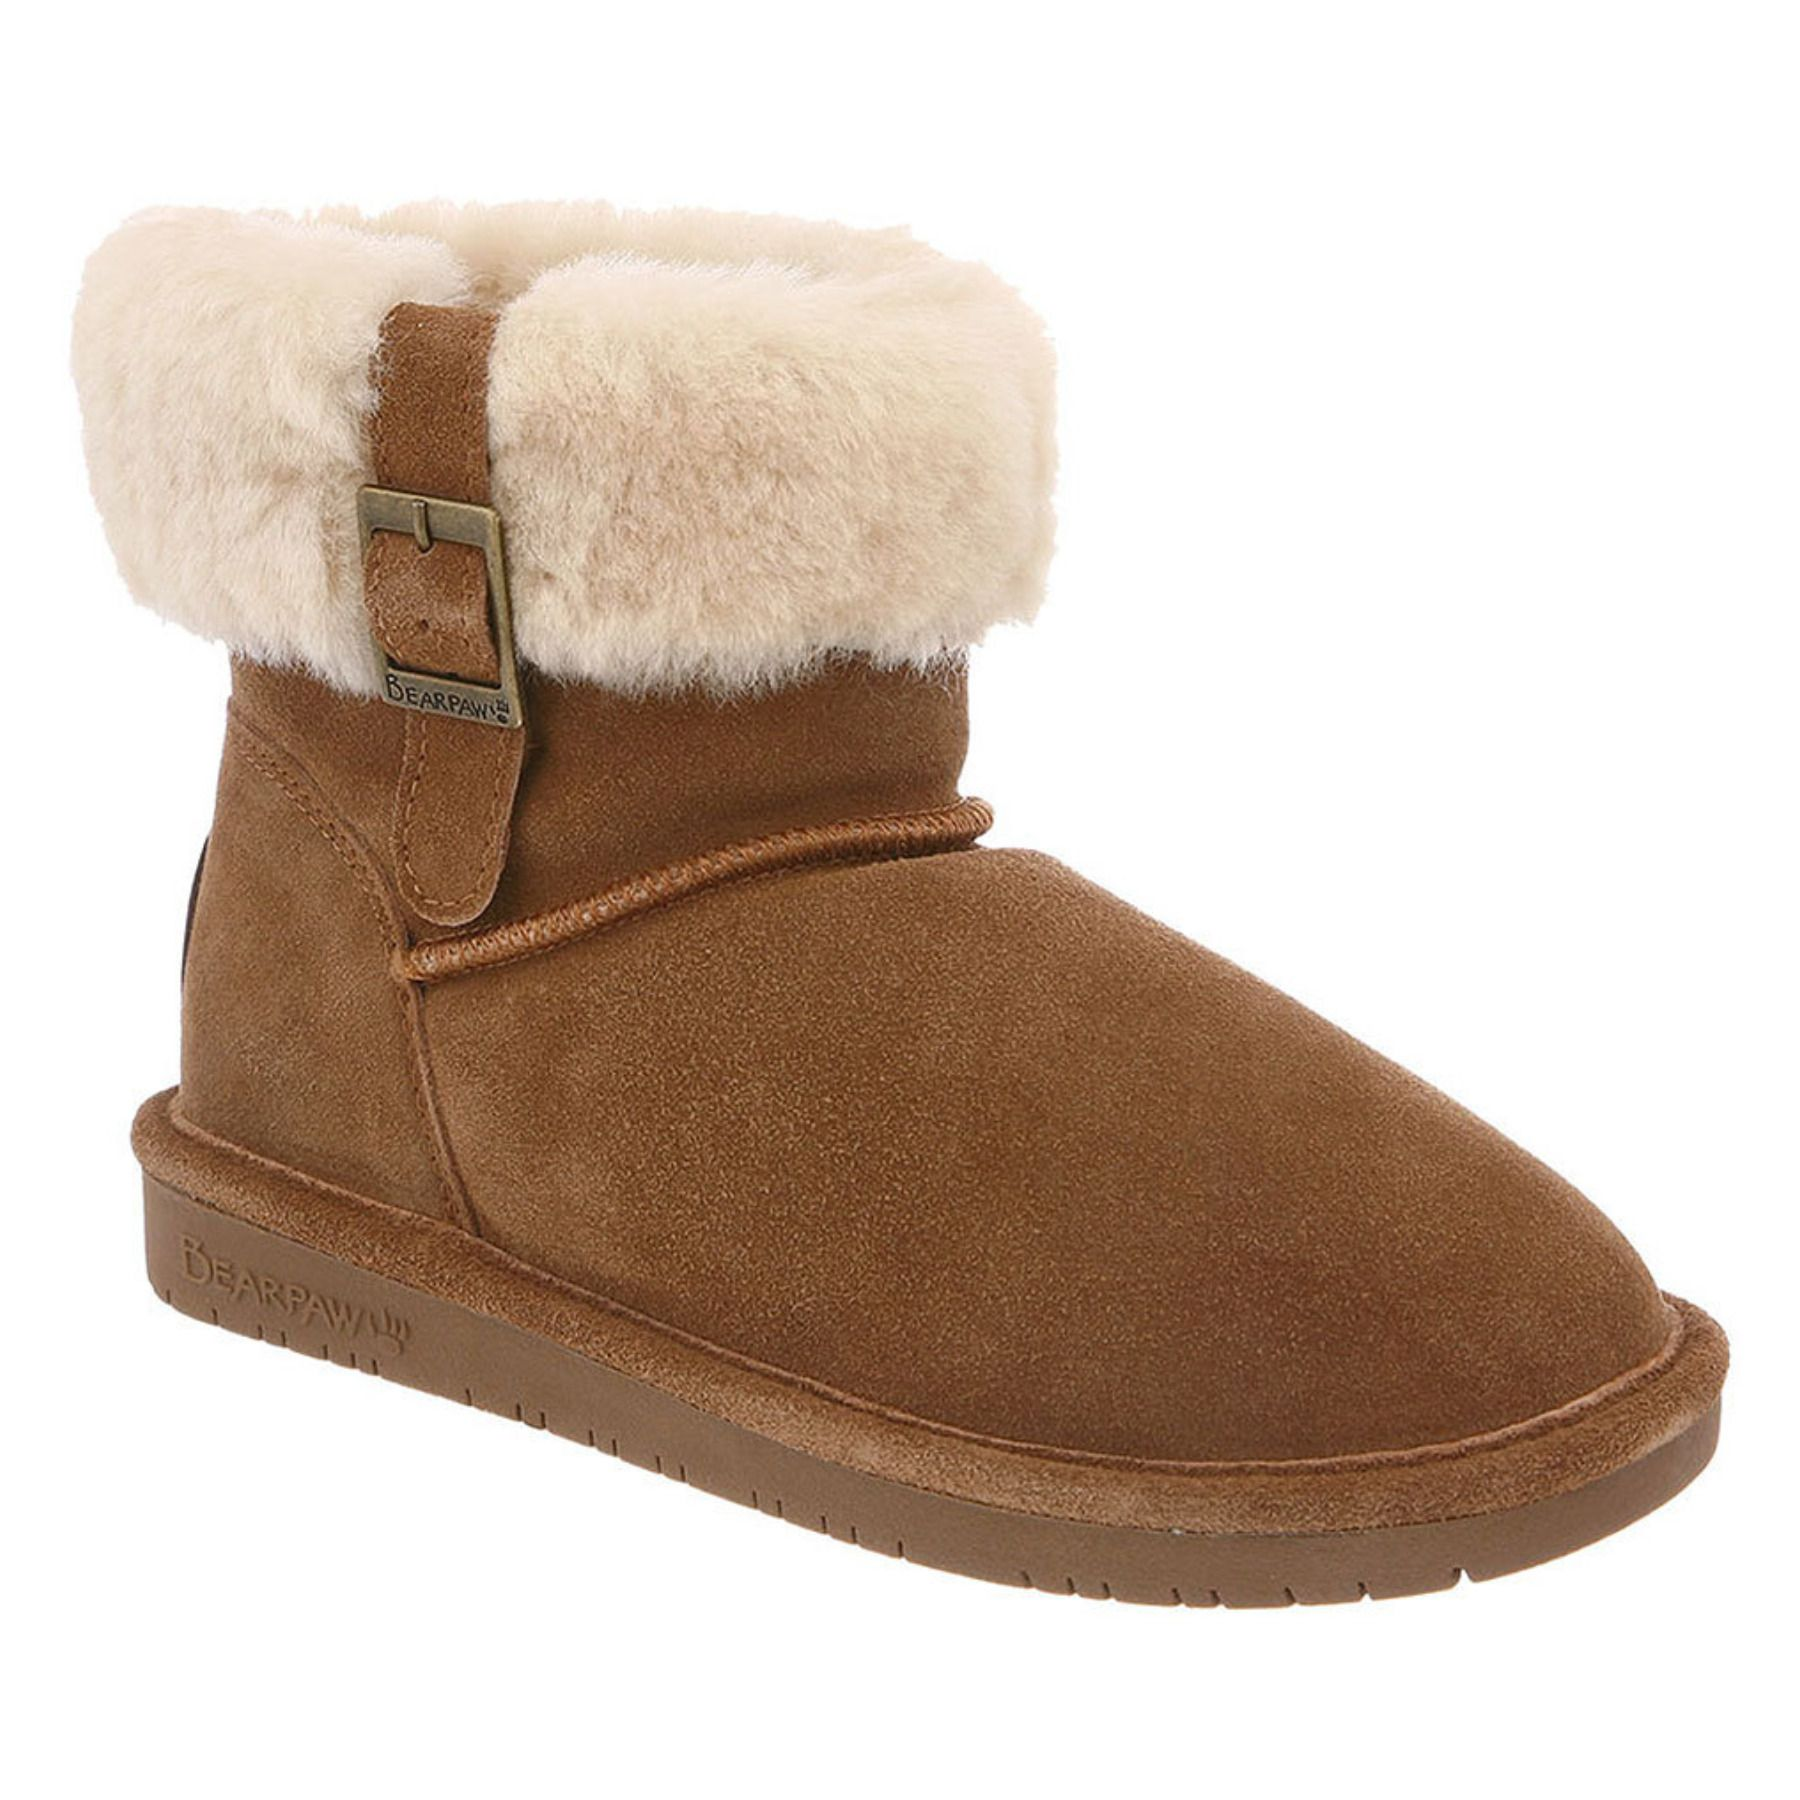 Boots Snow women size 12 advise to wear for summer in 2019